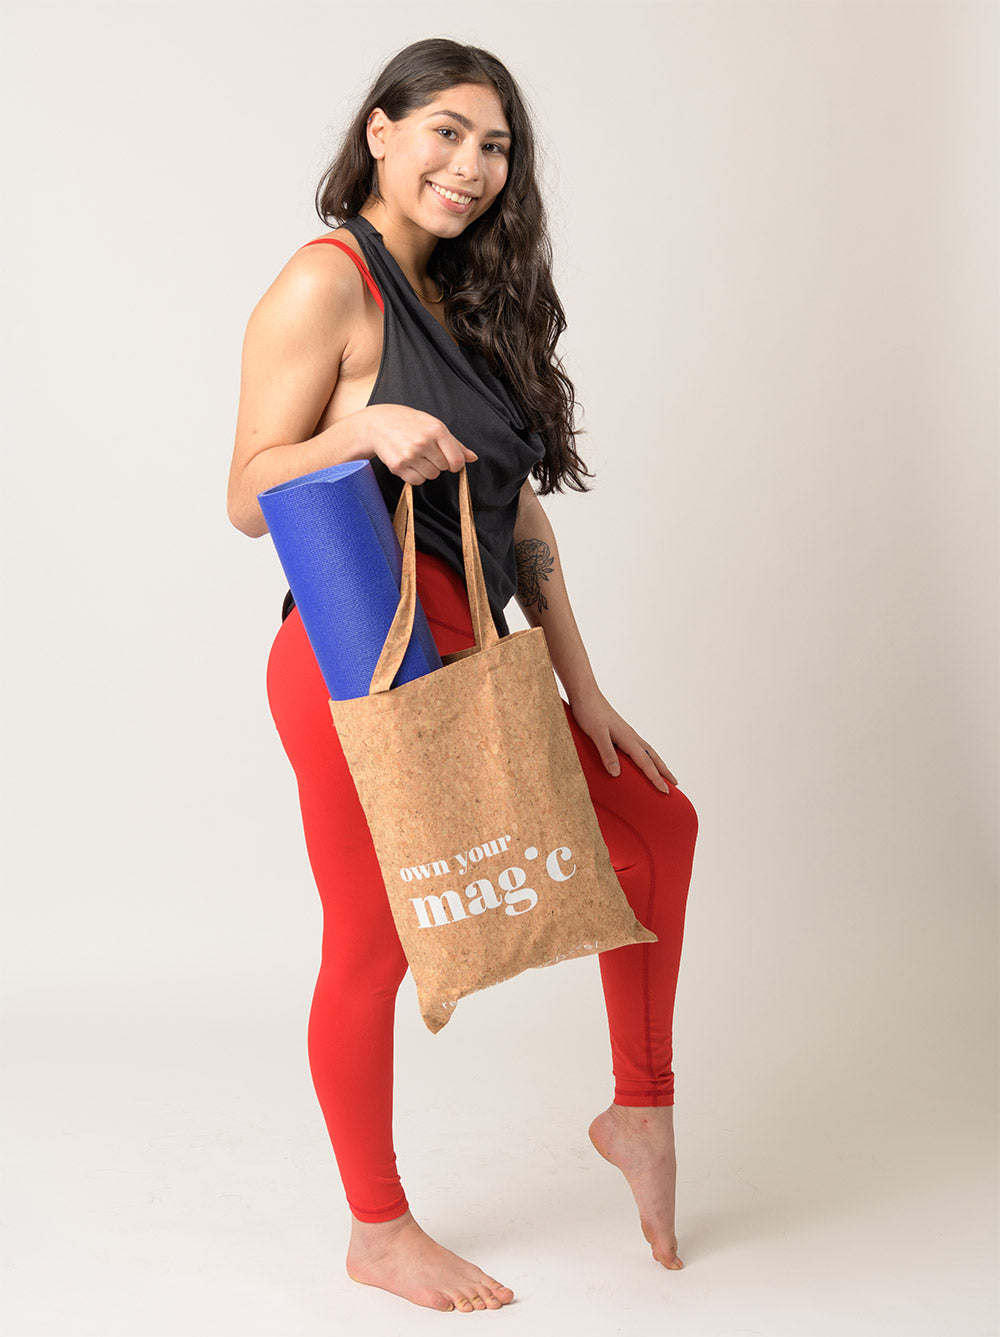 woman wearing Recreative Apparel leggings in fire red and carrying a yoga mat in a reusable vegan cork tote bag